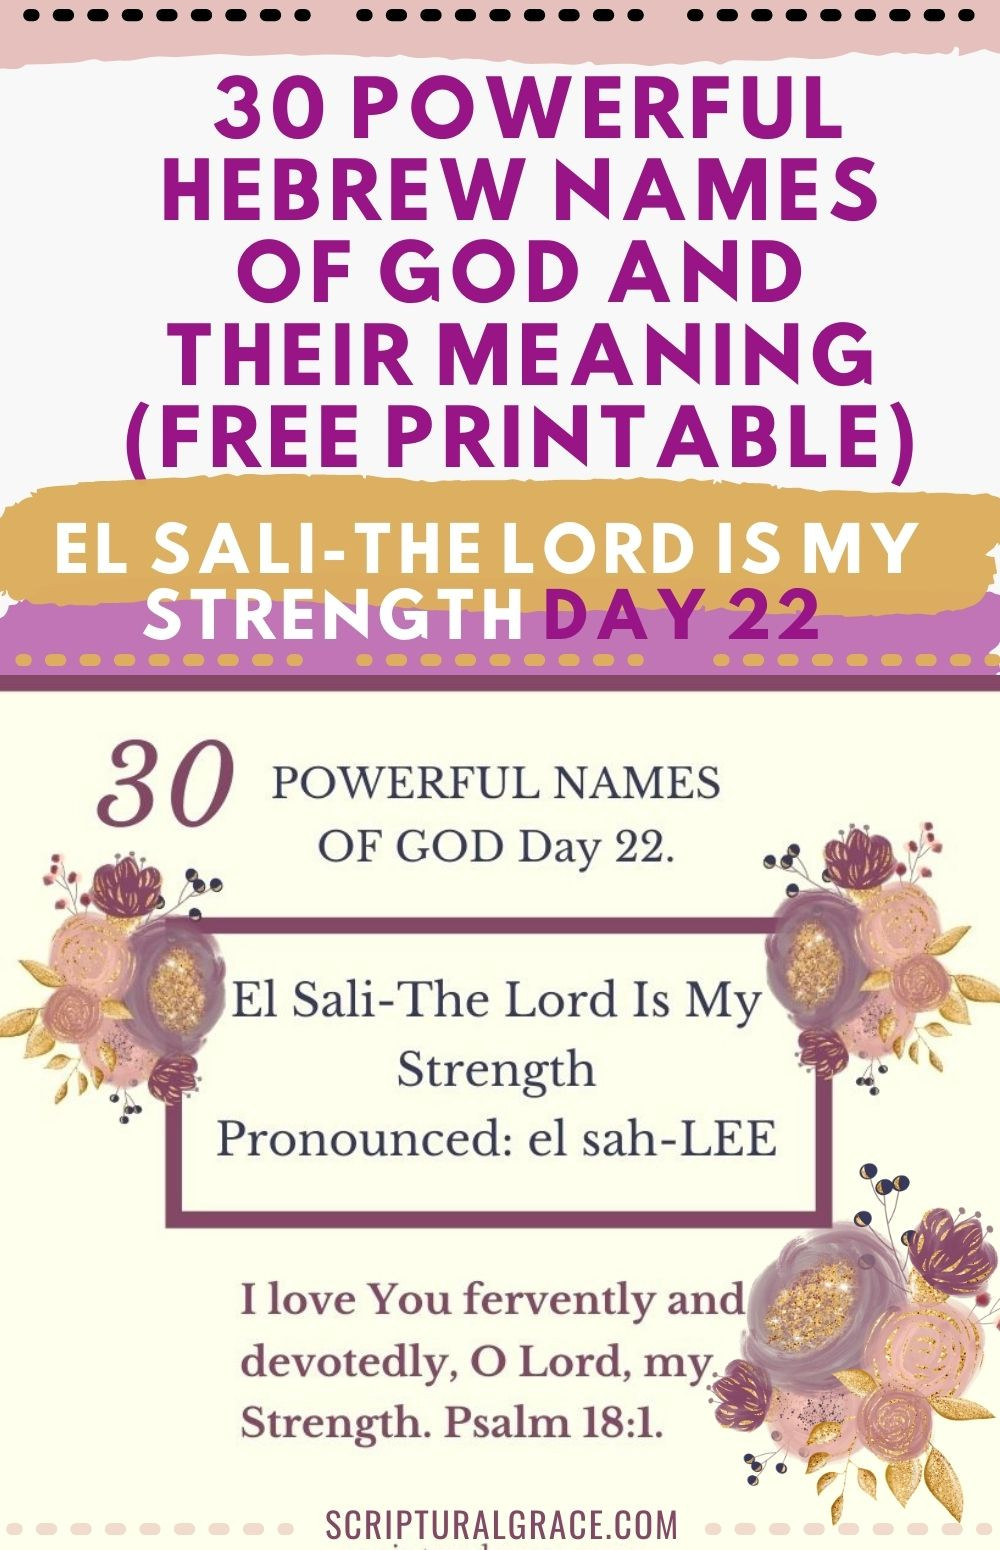 30 Powerful names of God- El Sali-The Lord is my strength